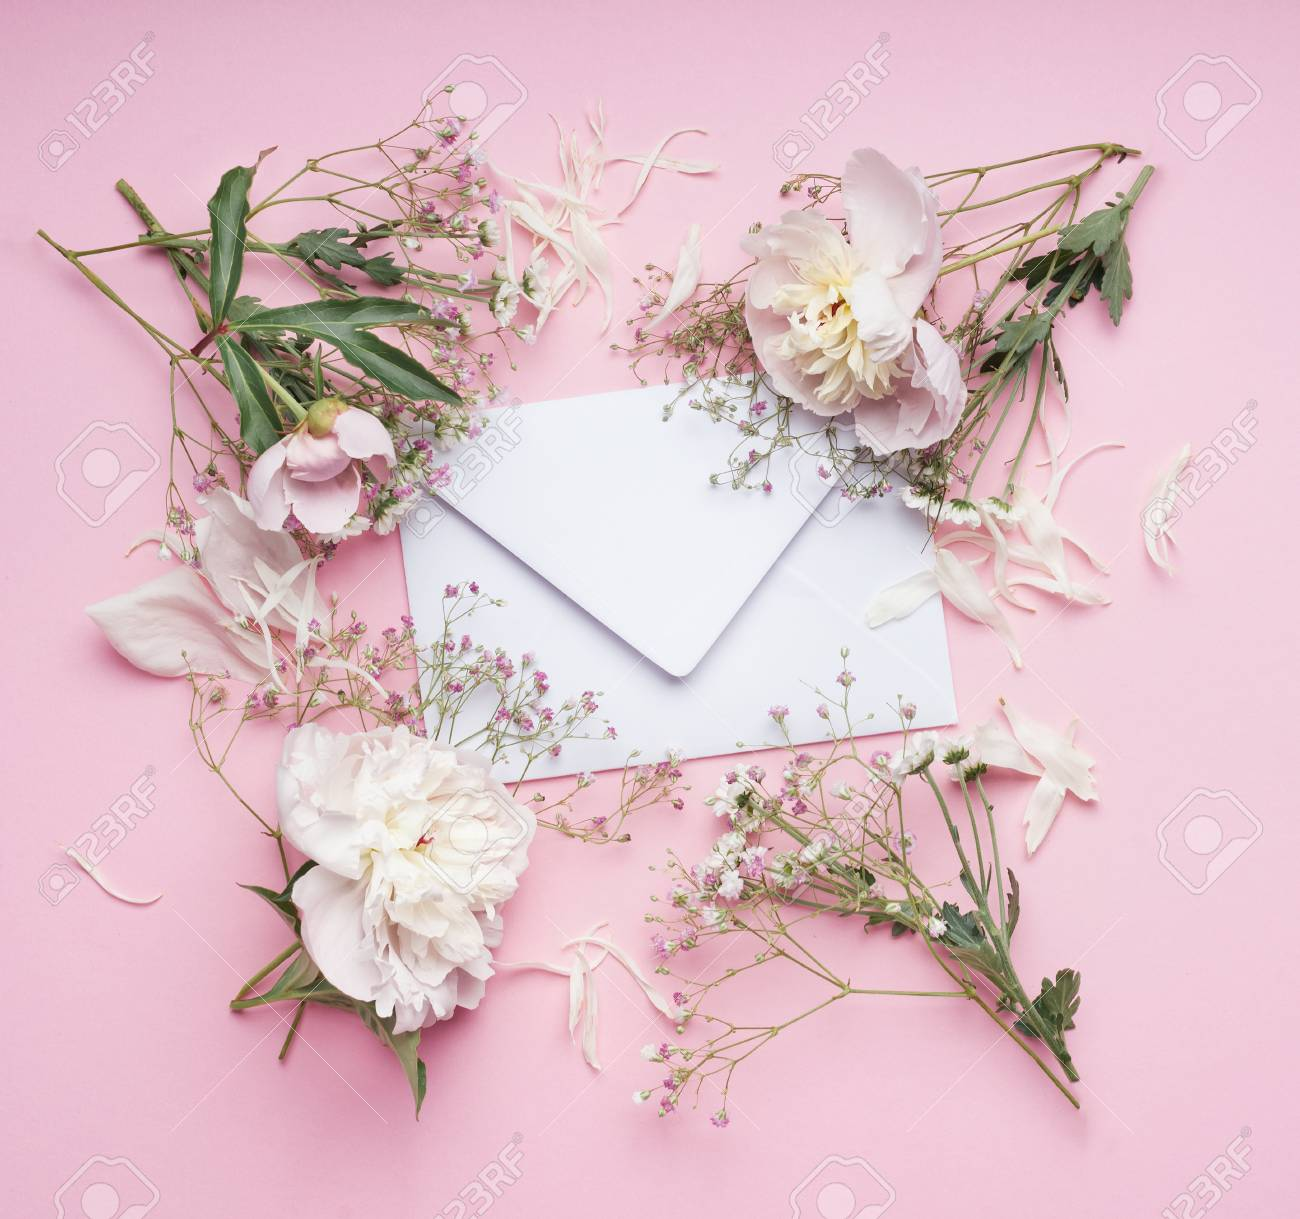 Pastel Pink Flowers Around White Envelop Floral Arrangement Stock Photo Picture And Royalty Free Image Image 80059540